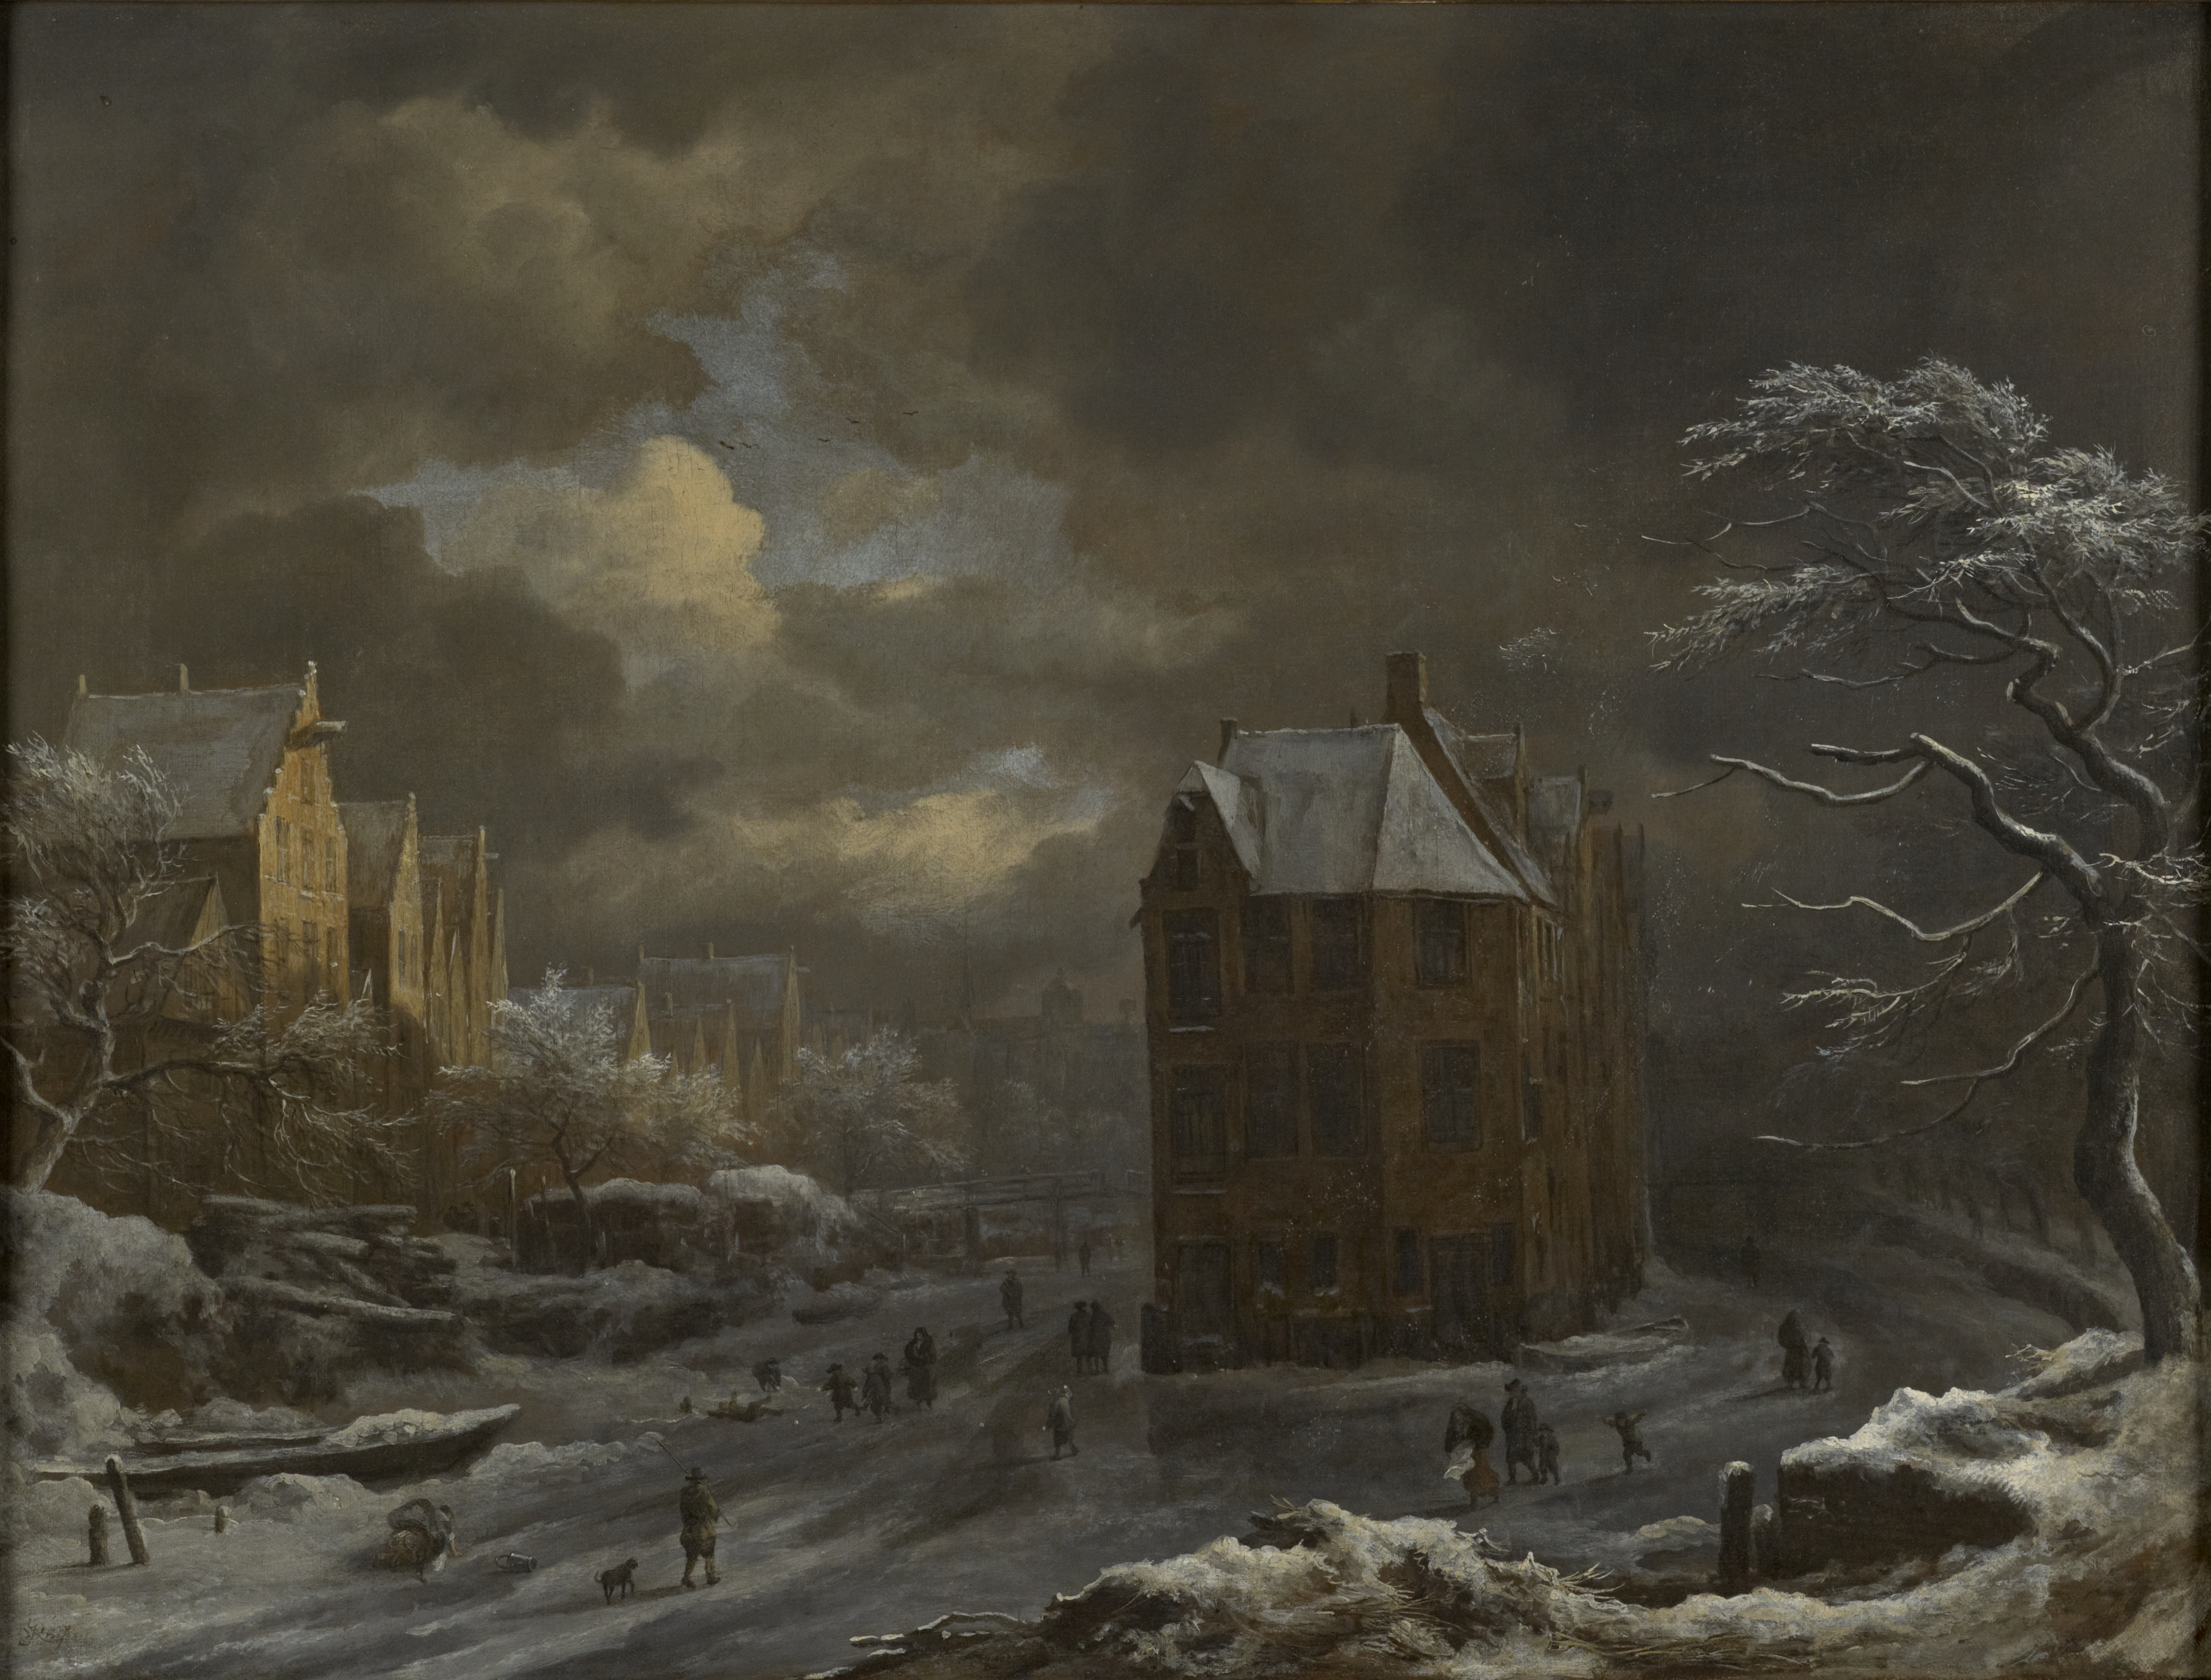 """Jacob Isaacsz van Ruisdael (1628-1682), Winter View of the """"Hekelveld"""" in Amsterdam, ca. 1665-1670s oil on canvas, 49.6 x 65.1 cm The Bute Collection at Mount Stuart"""